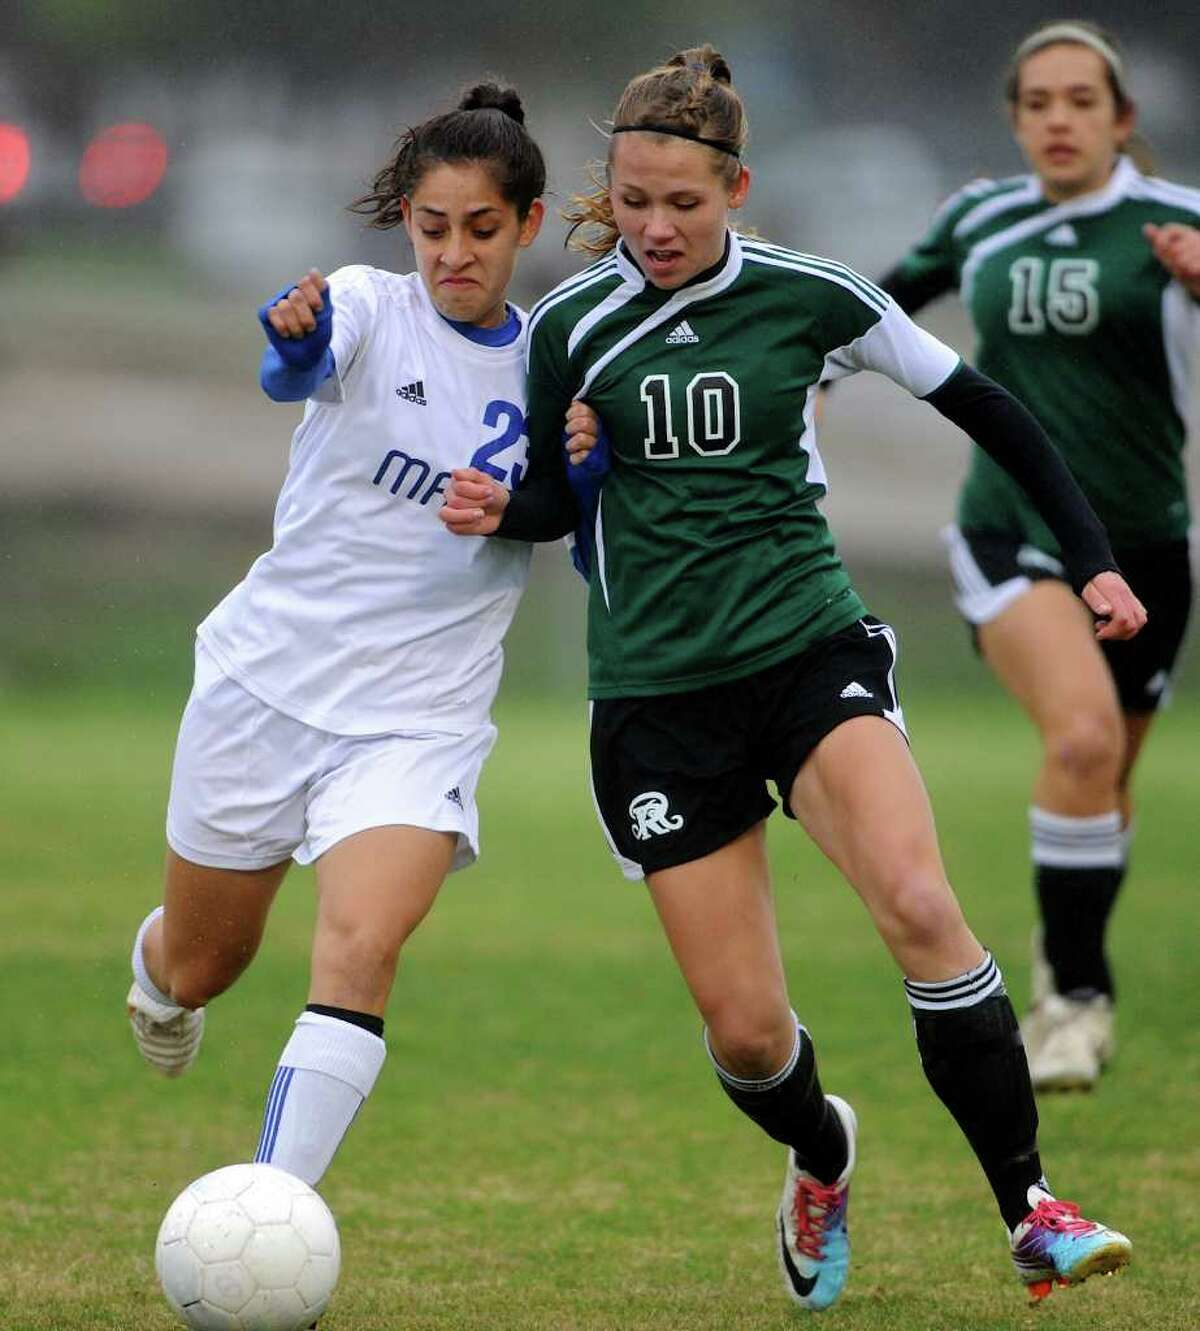 MacArthur senior Stephanie Figueroa (23) battles for control of the ball with Reagan senior Monica Penfield (10) during a 26-5A Girls Varsity Soccer Match between the Reagan Rattlers and the MacArthur Brahmas at the Blossom Soccer Stadium East Field In San Antonio, Texas on March 9, 2012. John Albright / Special to the Express-News.